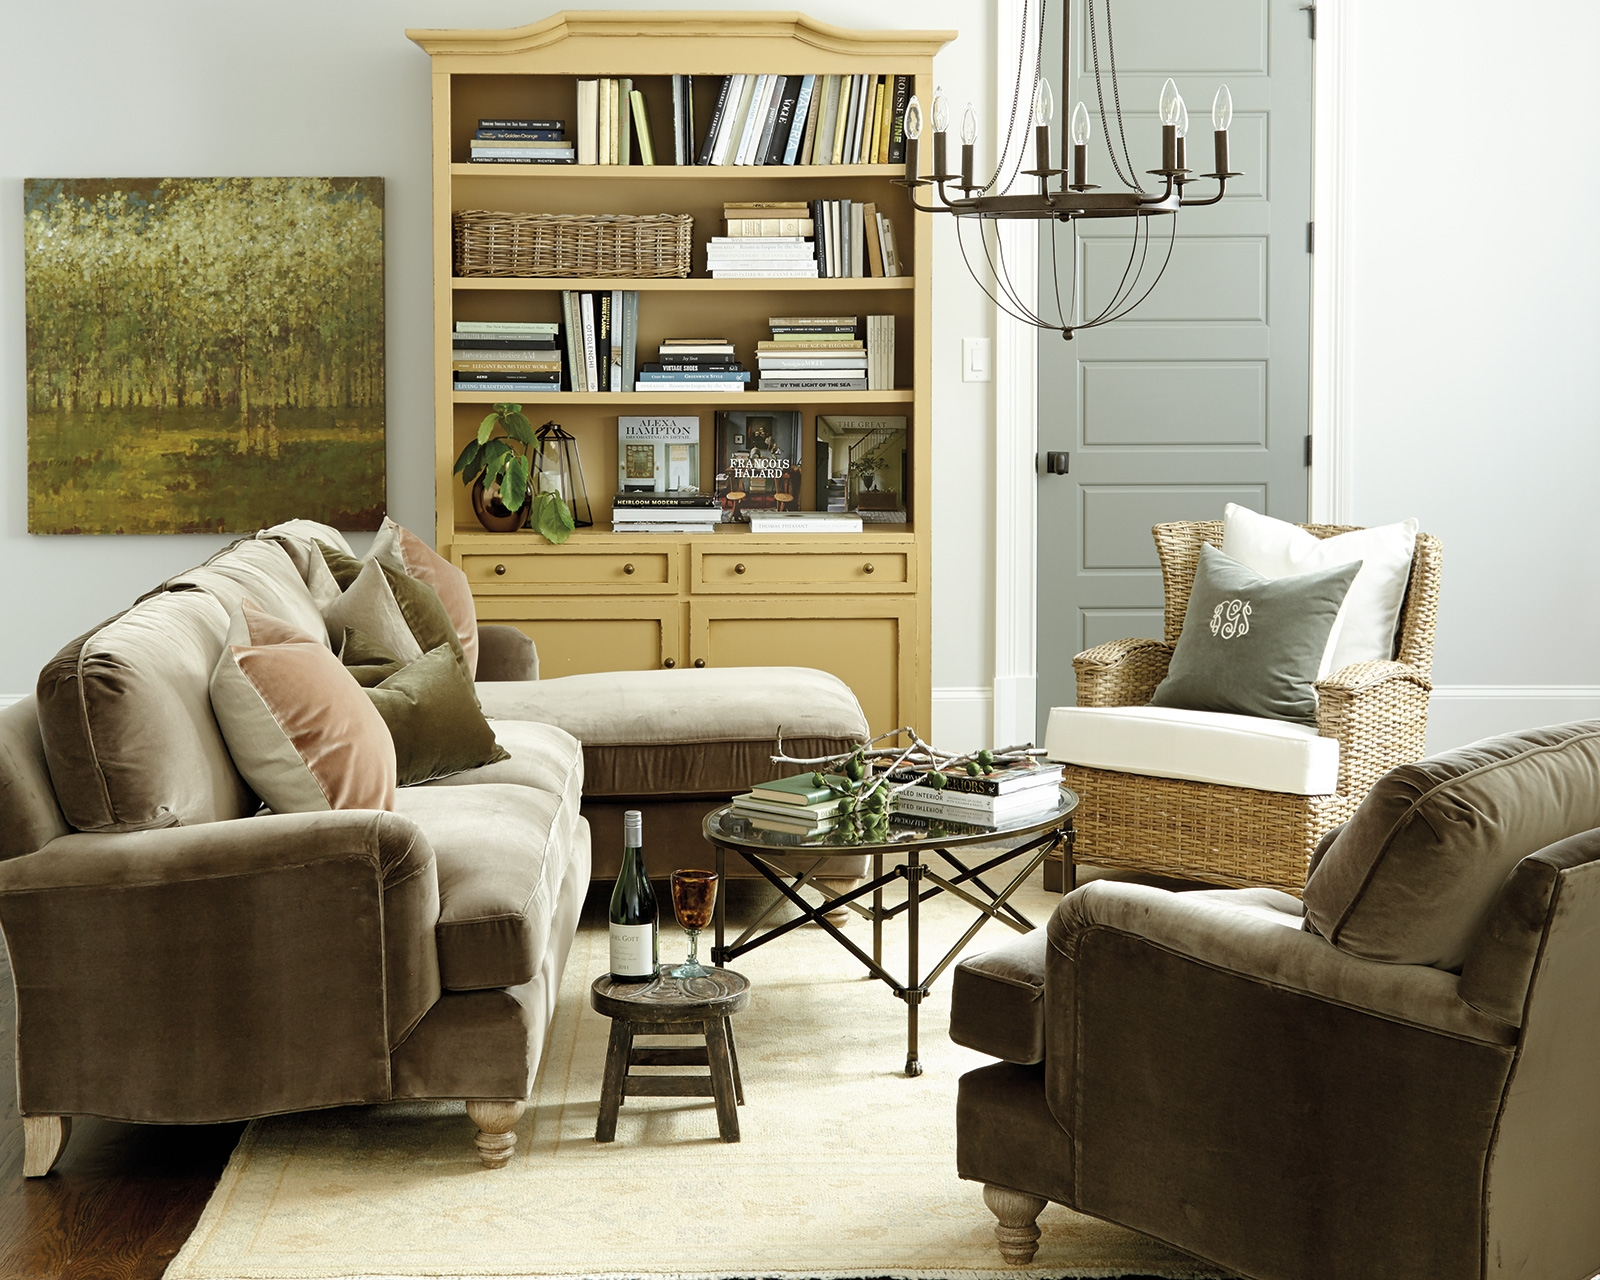 How To Match A Coffee Table To Your Sectional How To Decorate Throughout Coffee Table For Sectional Sofa (#9 of 12)